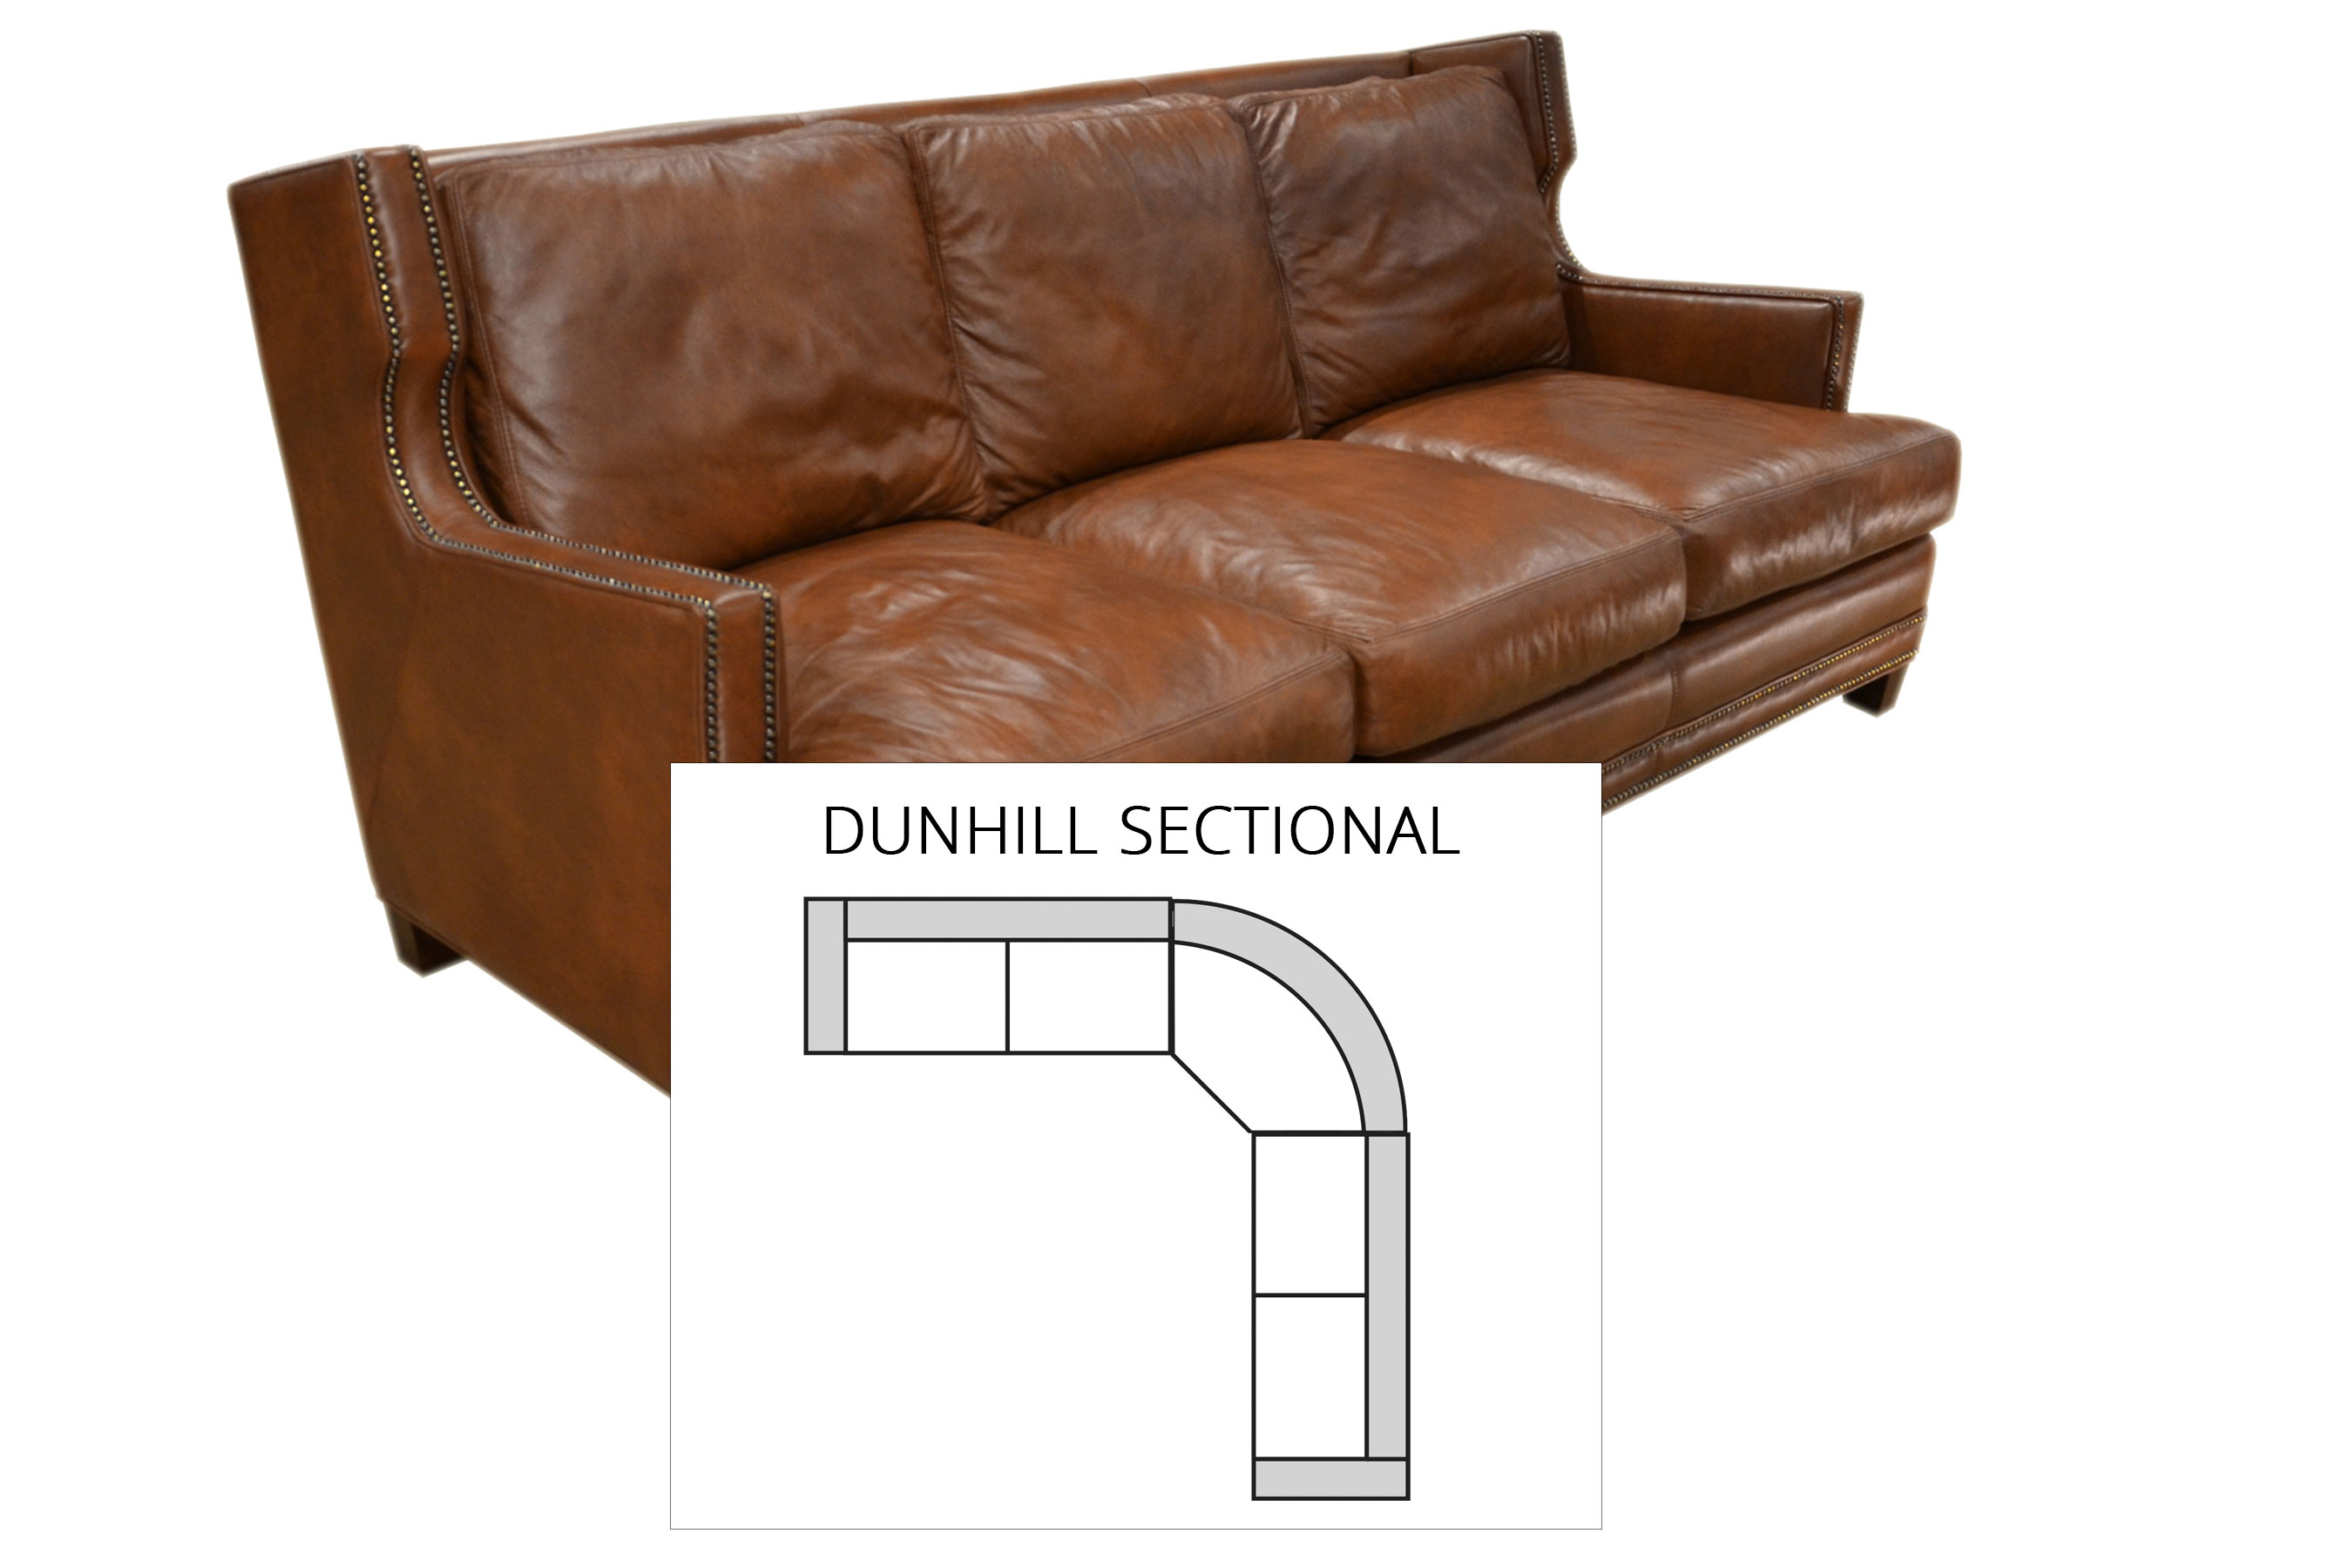 dunhill sectional all leather sofas